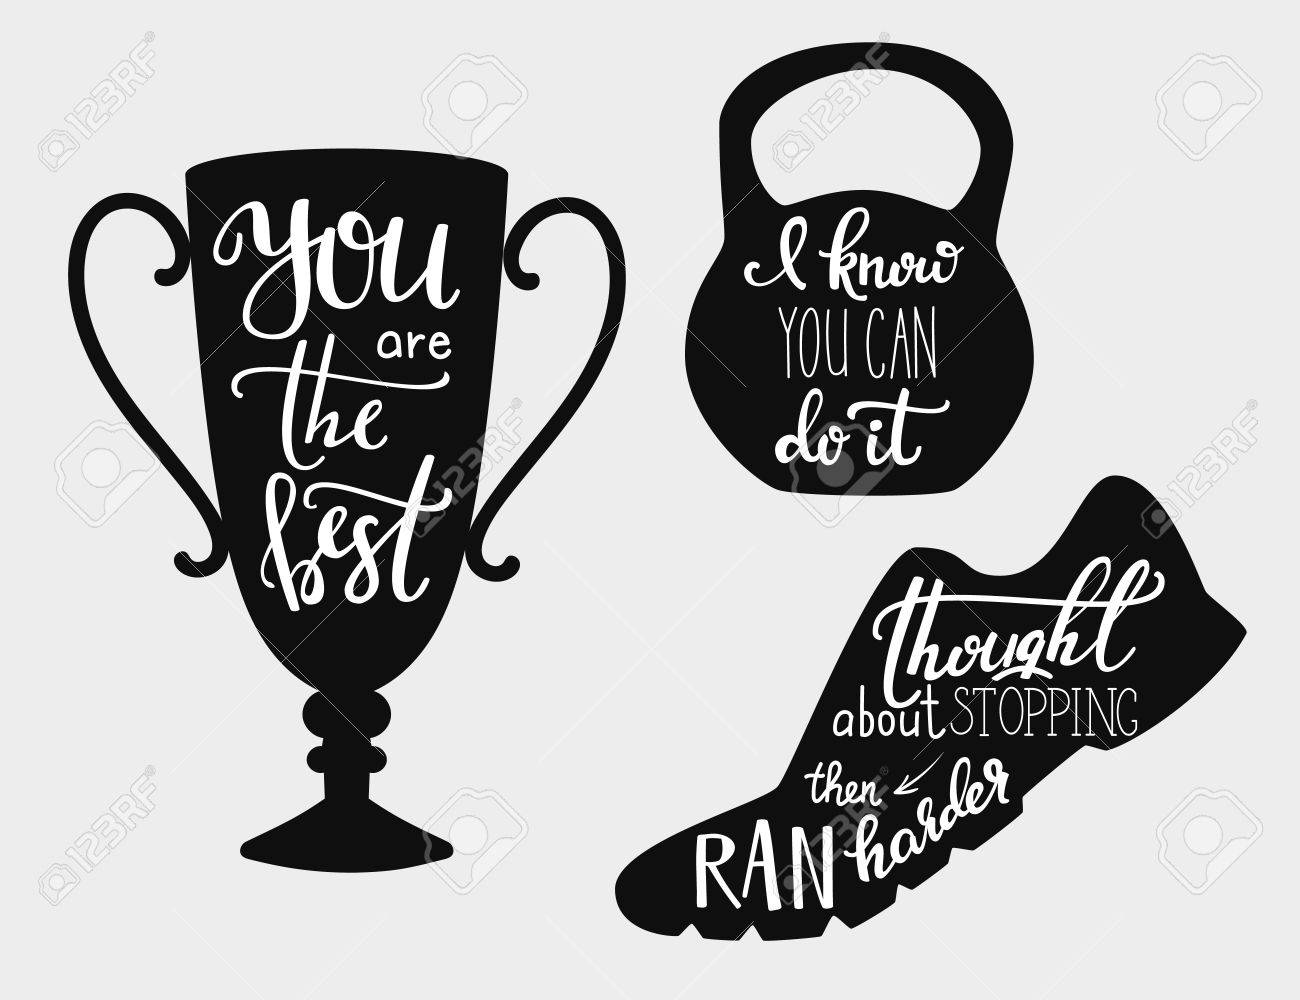 Quotes Motivation Lettering Quotes Motivation For Sportcalligraphy Style Quote